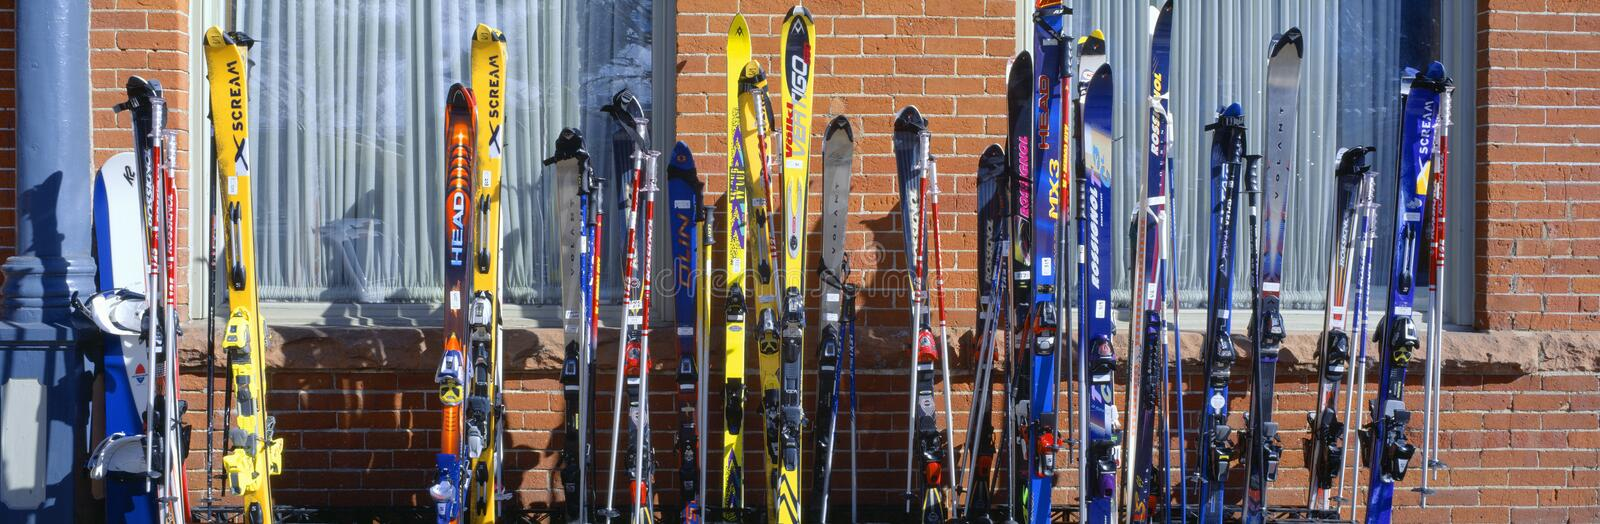 Skis bei Vail